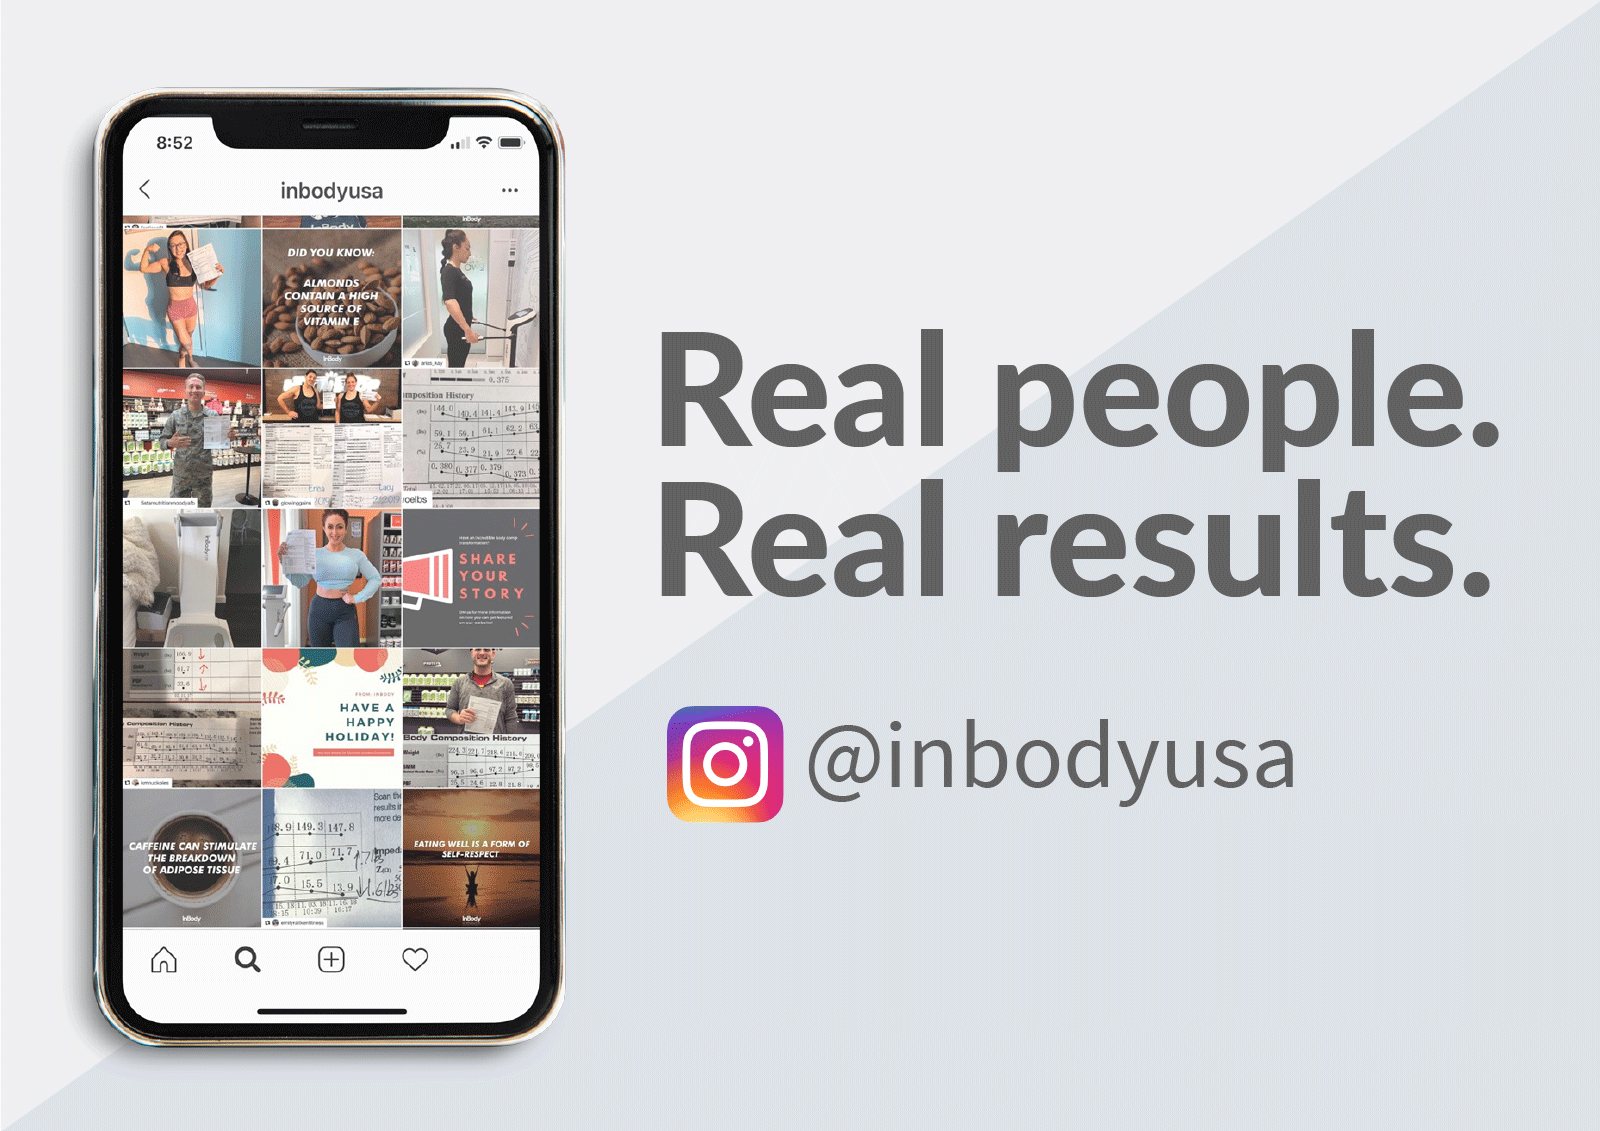 Real people. Real results. instagram.com/inbodyusa